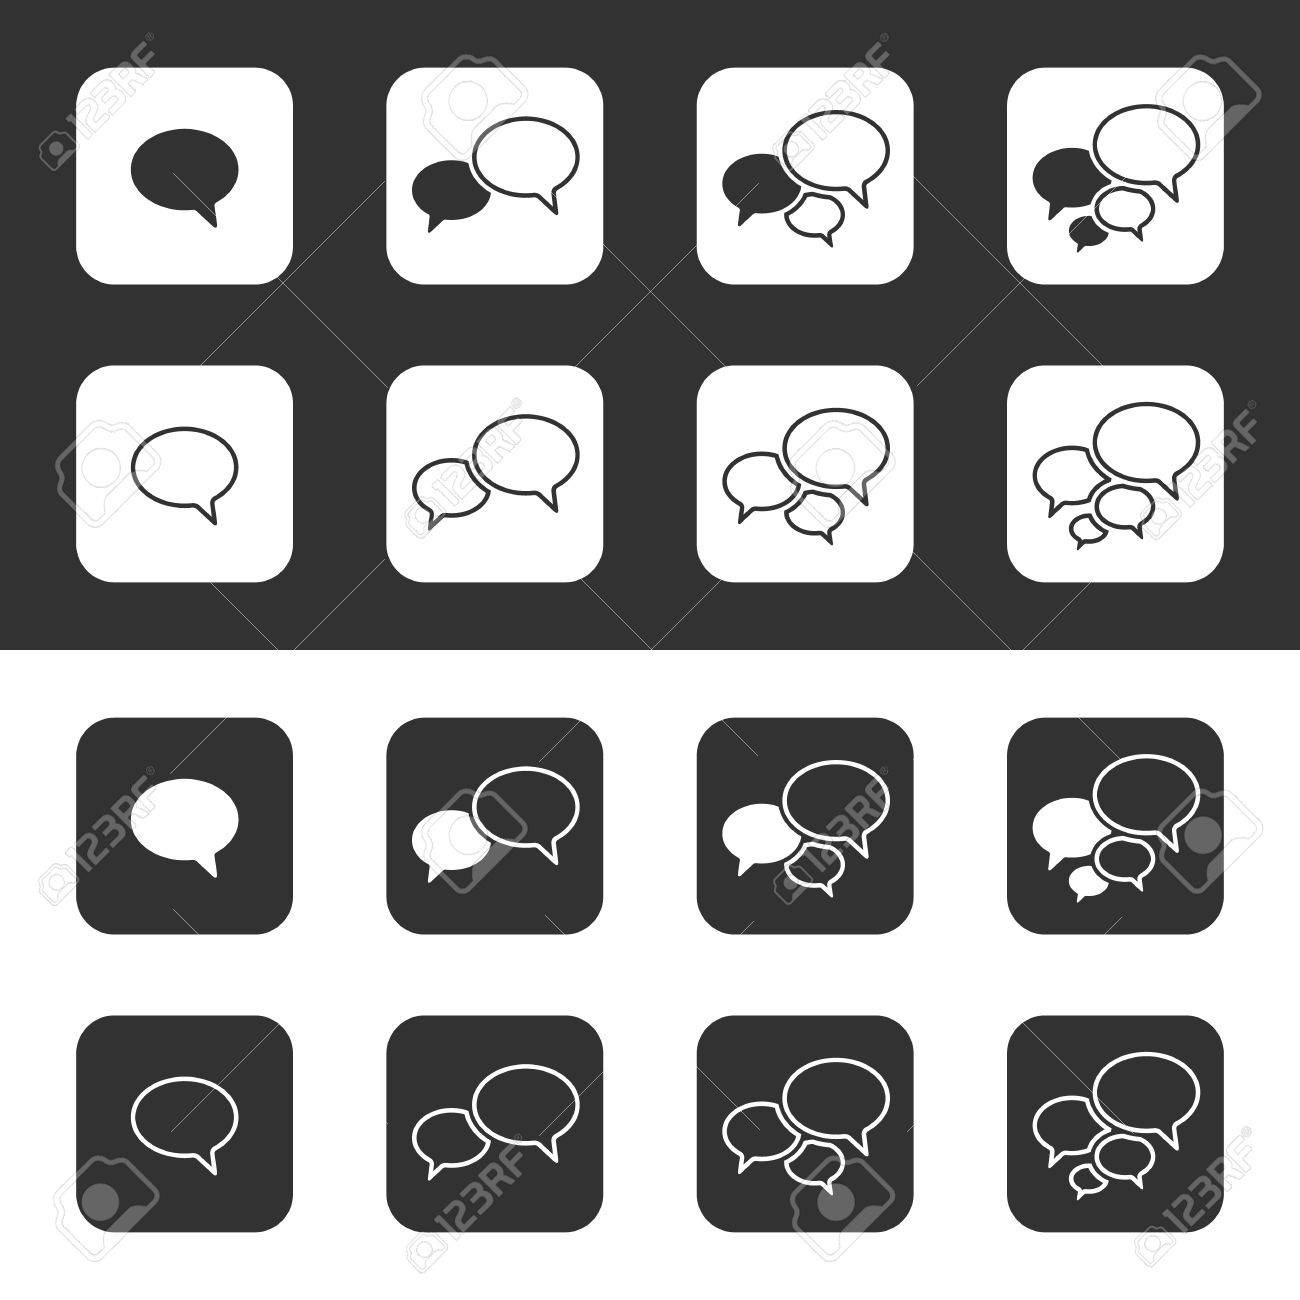 Trendy Thin Icons With Speech Bubbles  Set  Vector Stock Vector - 24251326